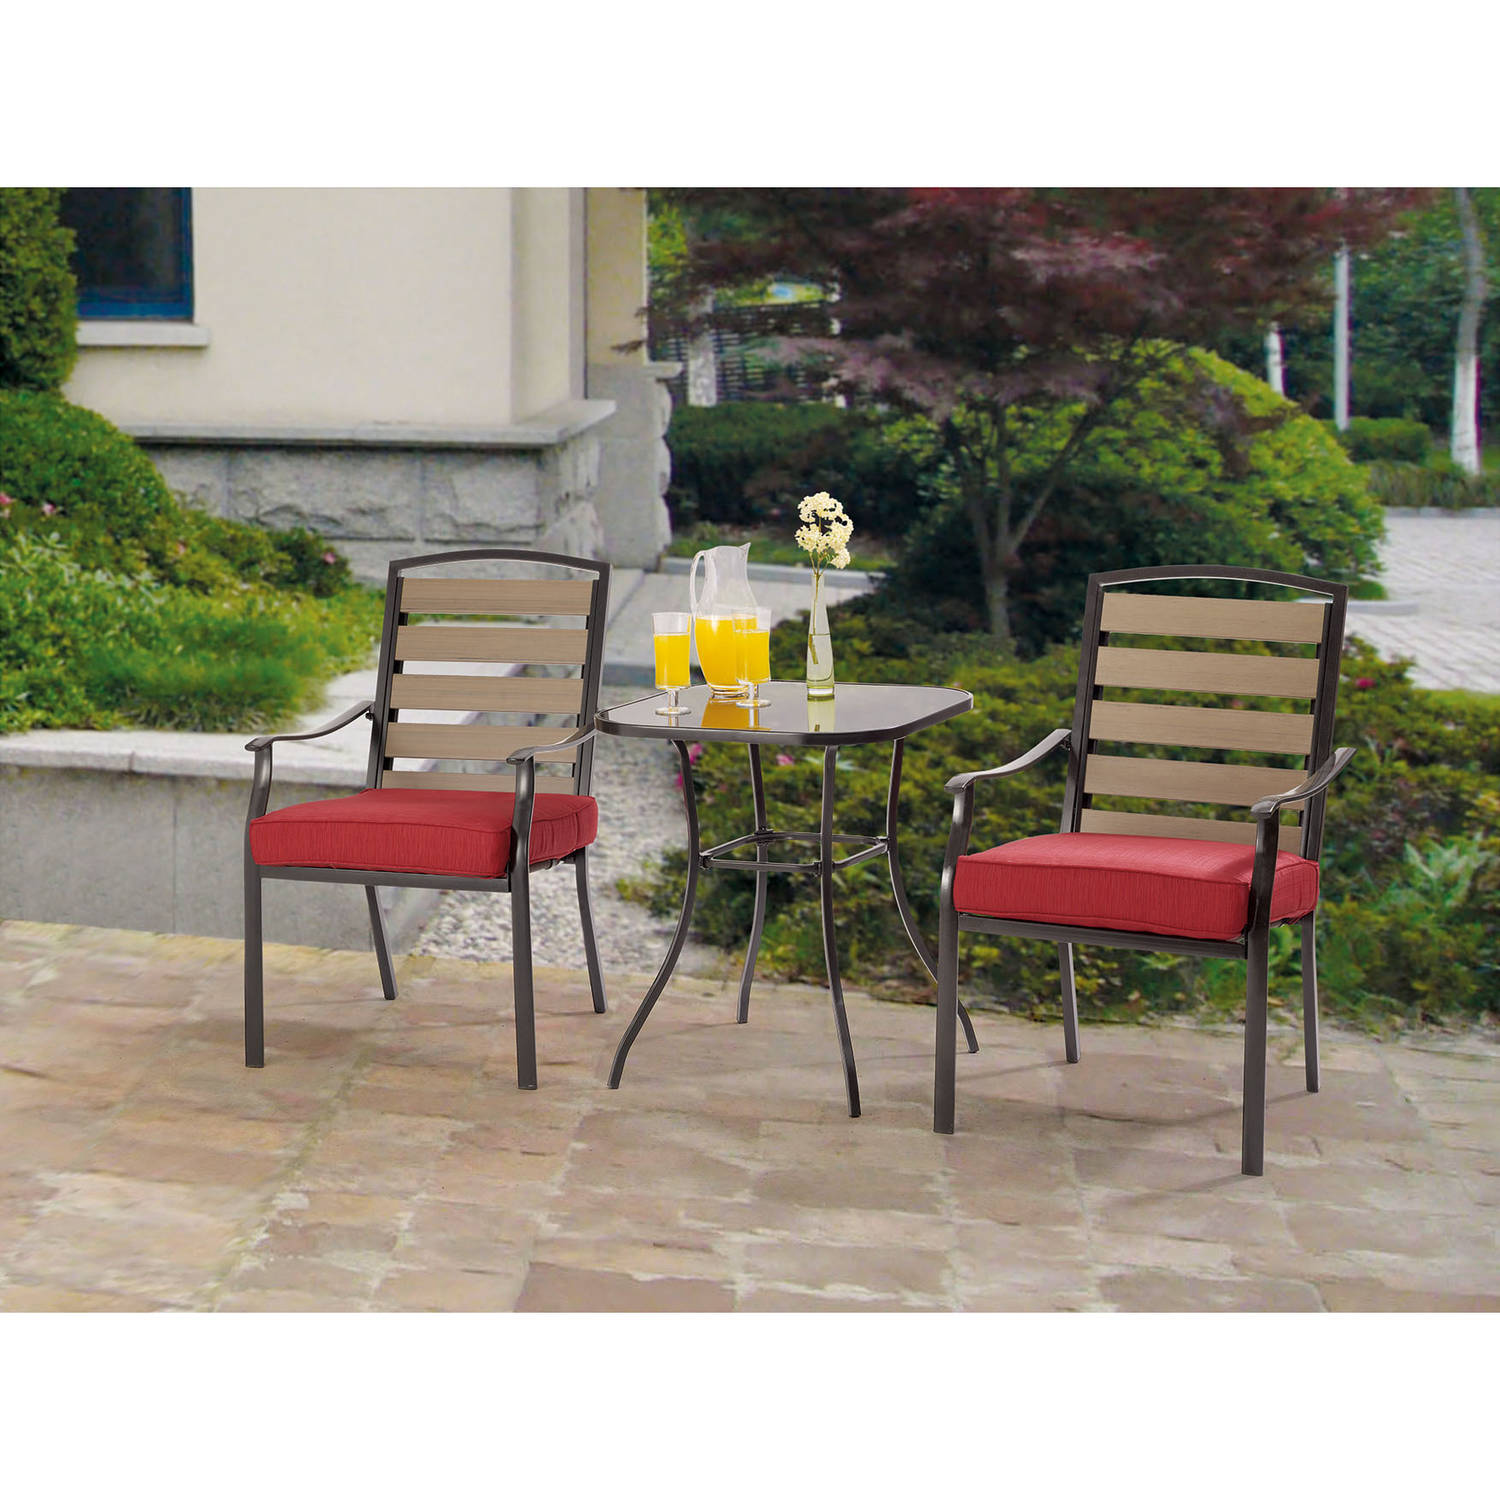 Mainstays Alexandra Square 3-Piece Outdoor Bistro Set Seats 2 - Walmart.com  sc 1 st  Walmart & Mainstays Alexandra Square 3-Piece Outdoor Bistro Set Seats 2 ...